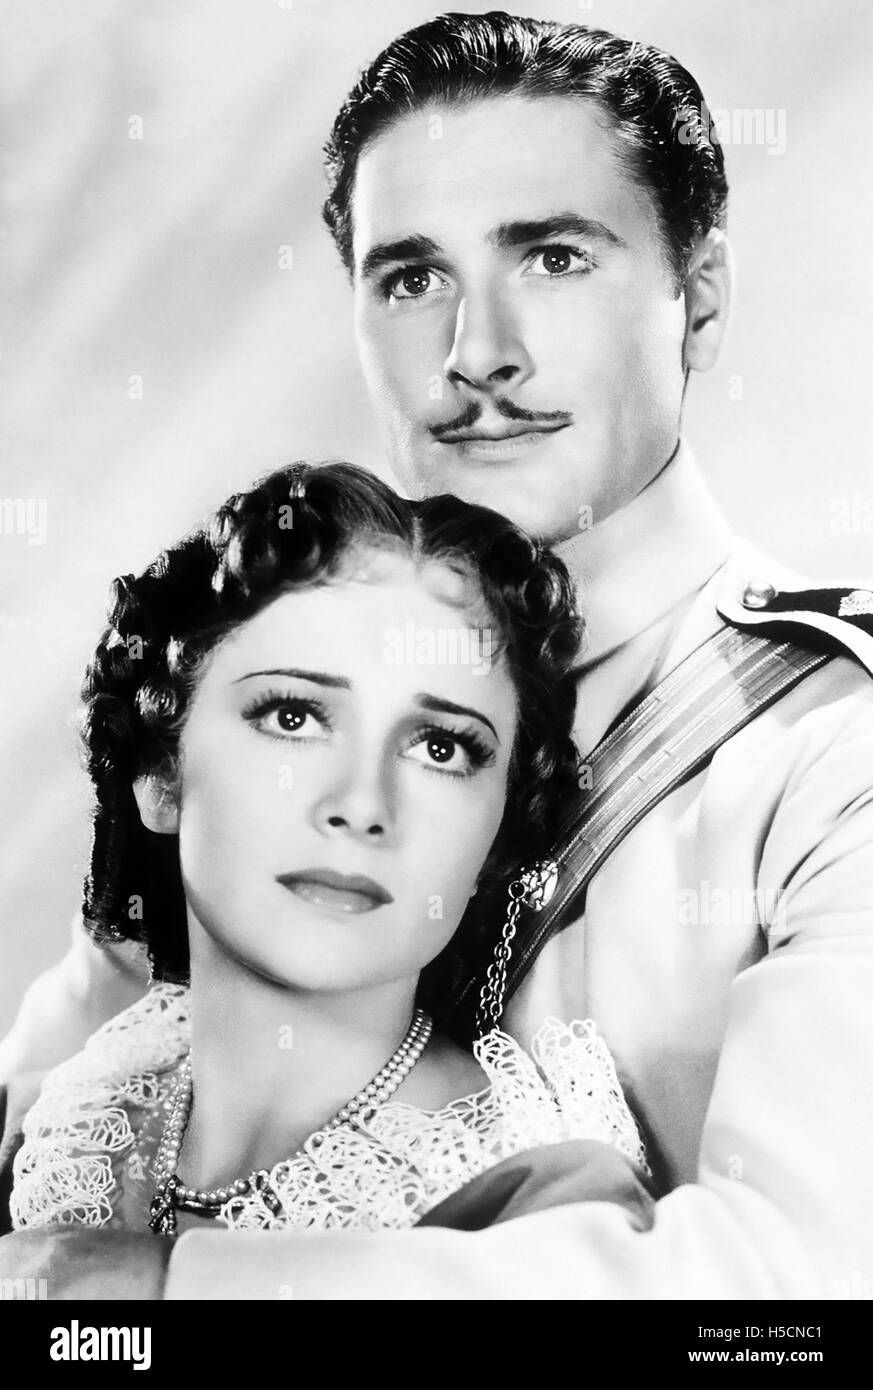 THE CHARGE OF THE LIGHT BRIGADE 1936 Warner Bros film with Errol Flynn and Olivia de Havilland - Stock Image